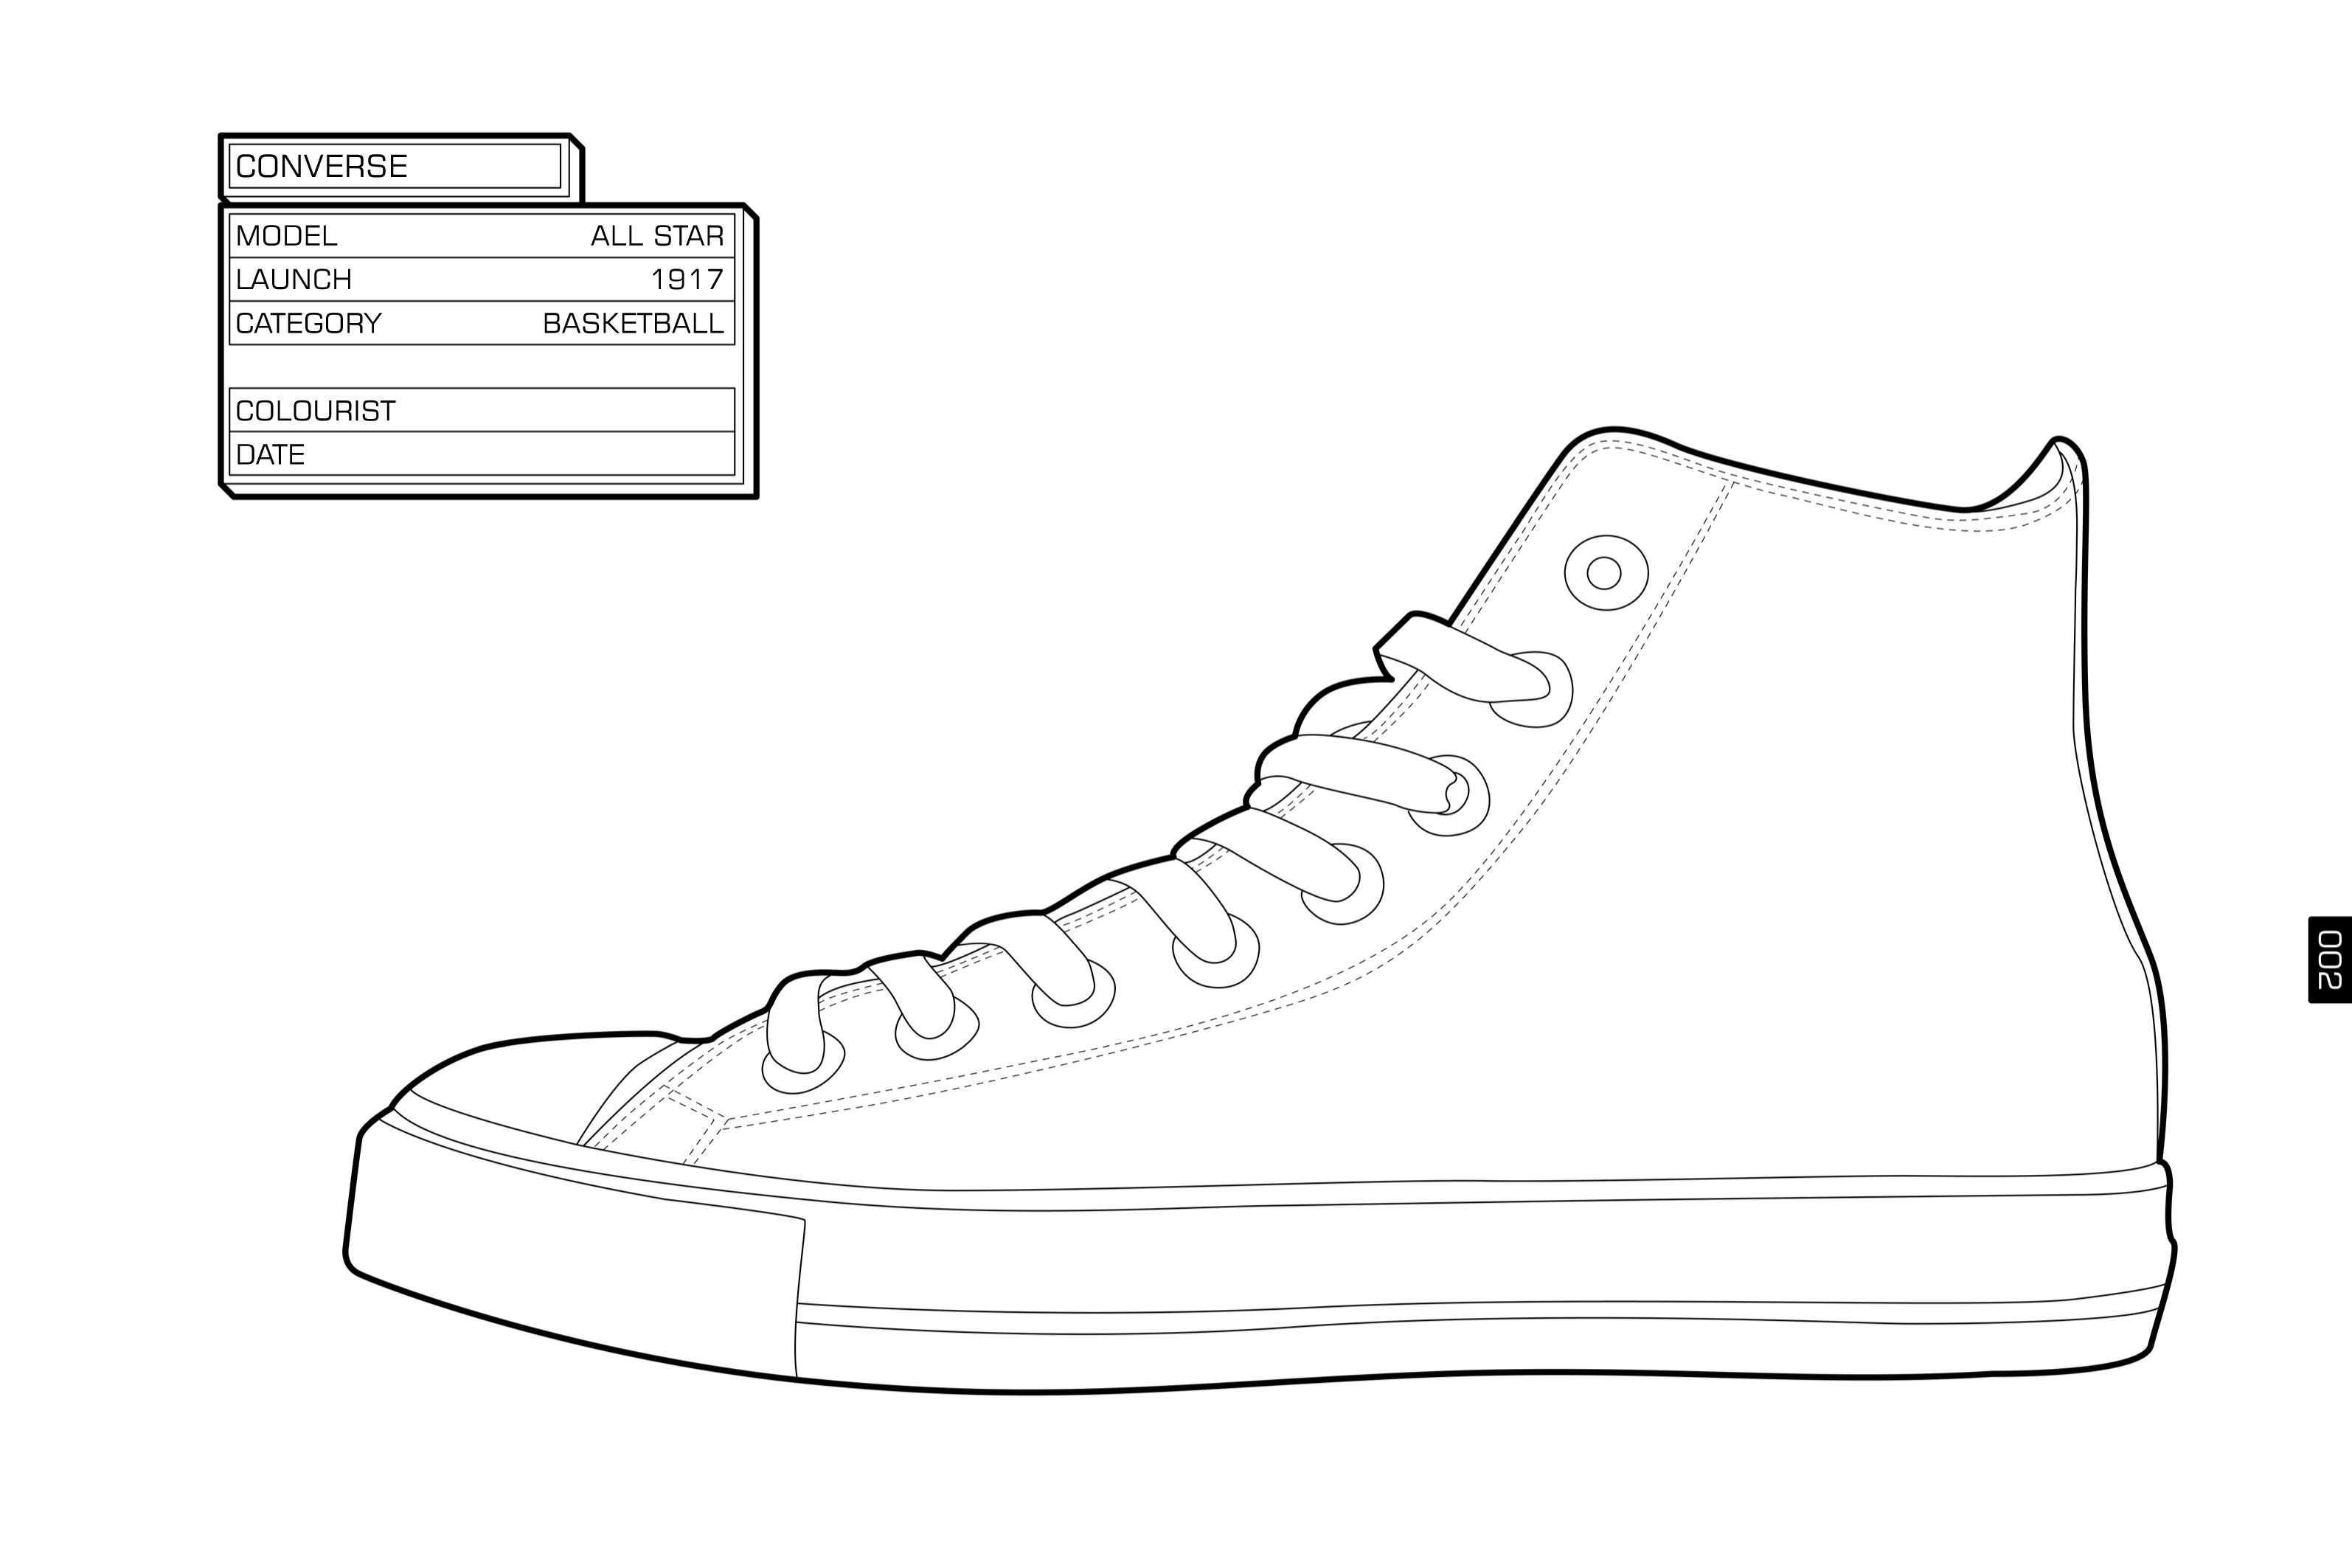 Free Coloring Pages Of I Love Shoes Sneakers Drawing Converse Shoes High Top Sneakers